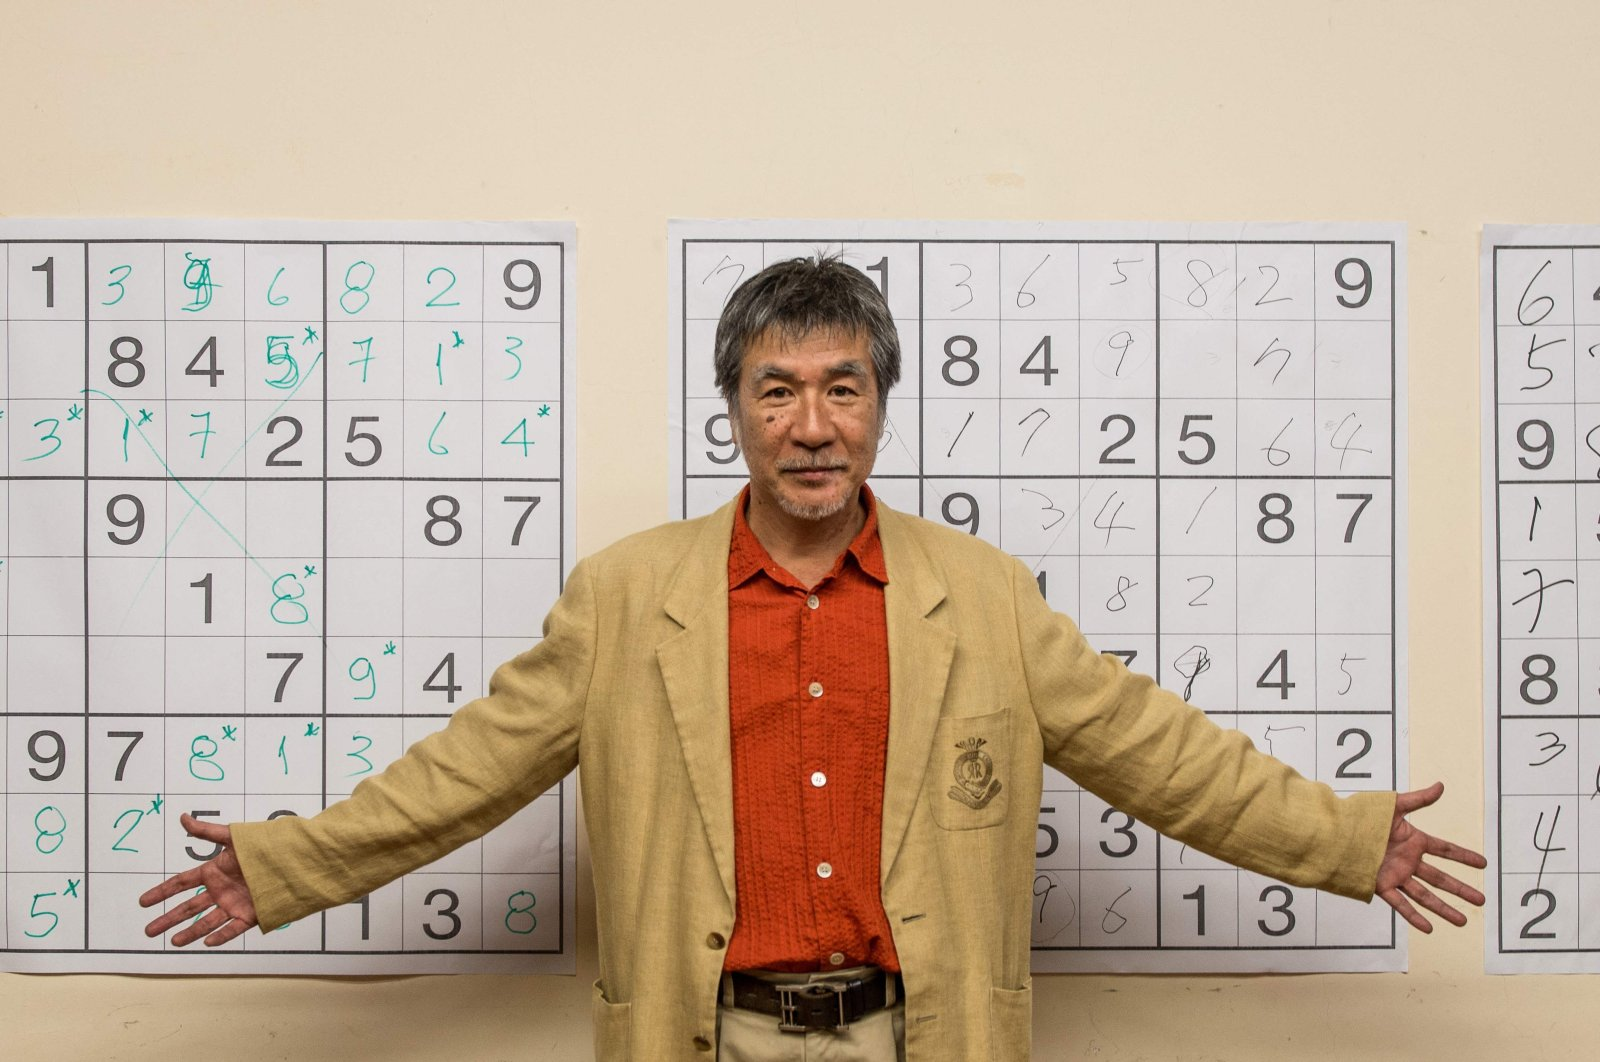 Japanese puzzle manufacturer Maki Kaji poses for a picture during the first Sudoku national competition in Sao Paulo, Brazil, Sept. 29, 2012. (AFP Photo)